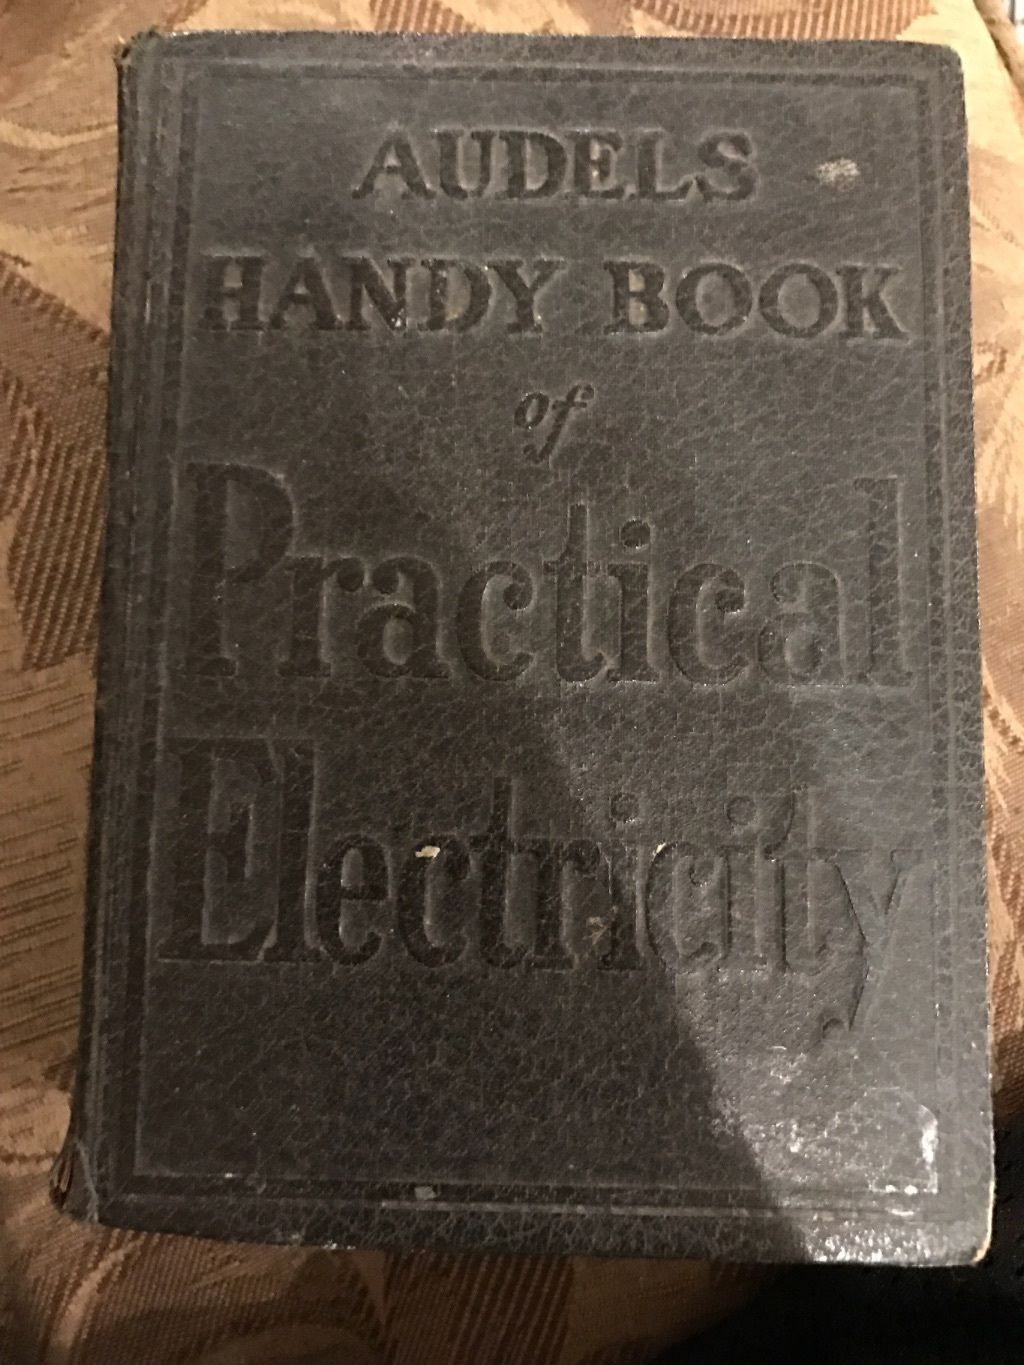 Primary image for Audels Handy Book Of Practical Electricity., Very Good Books